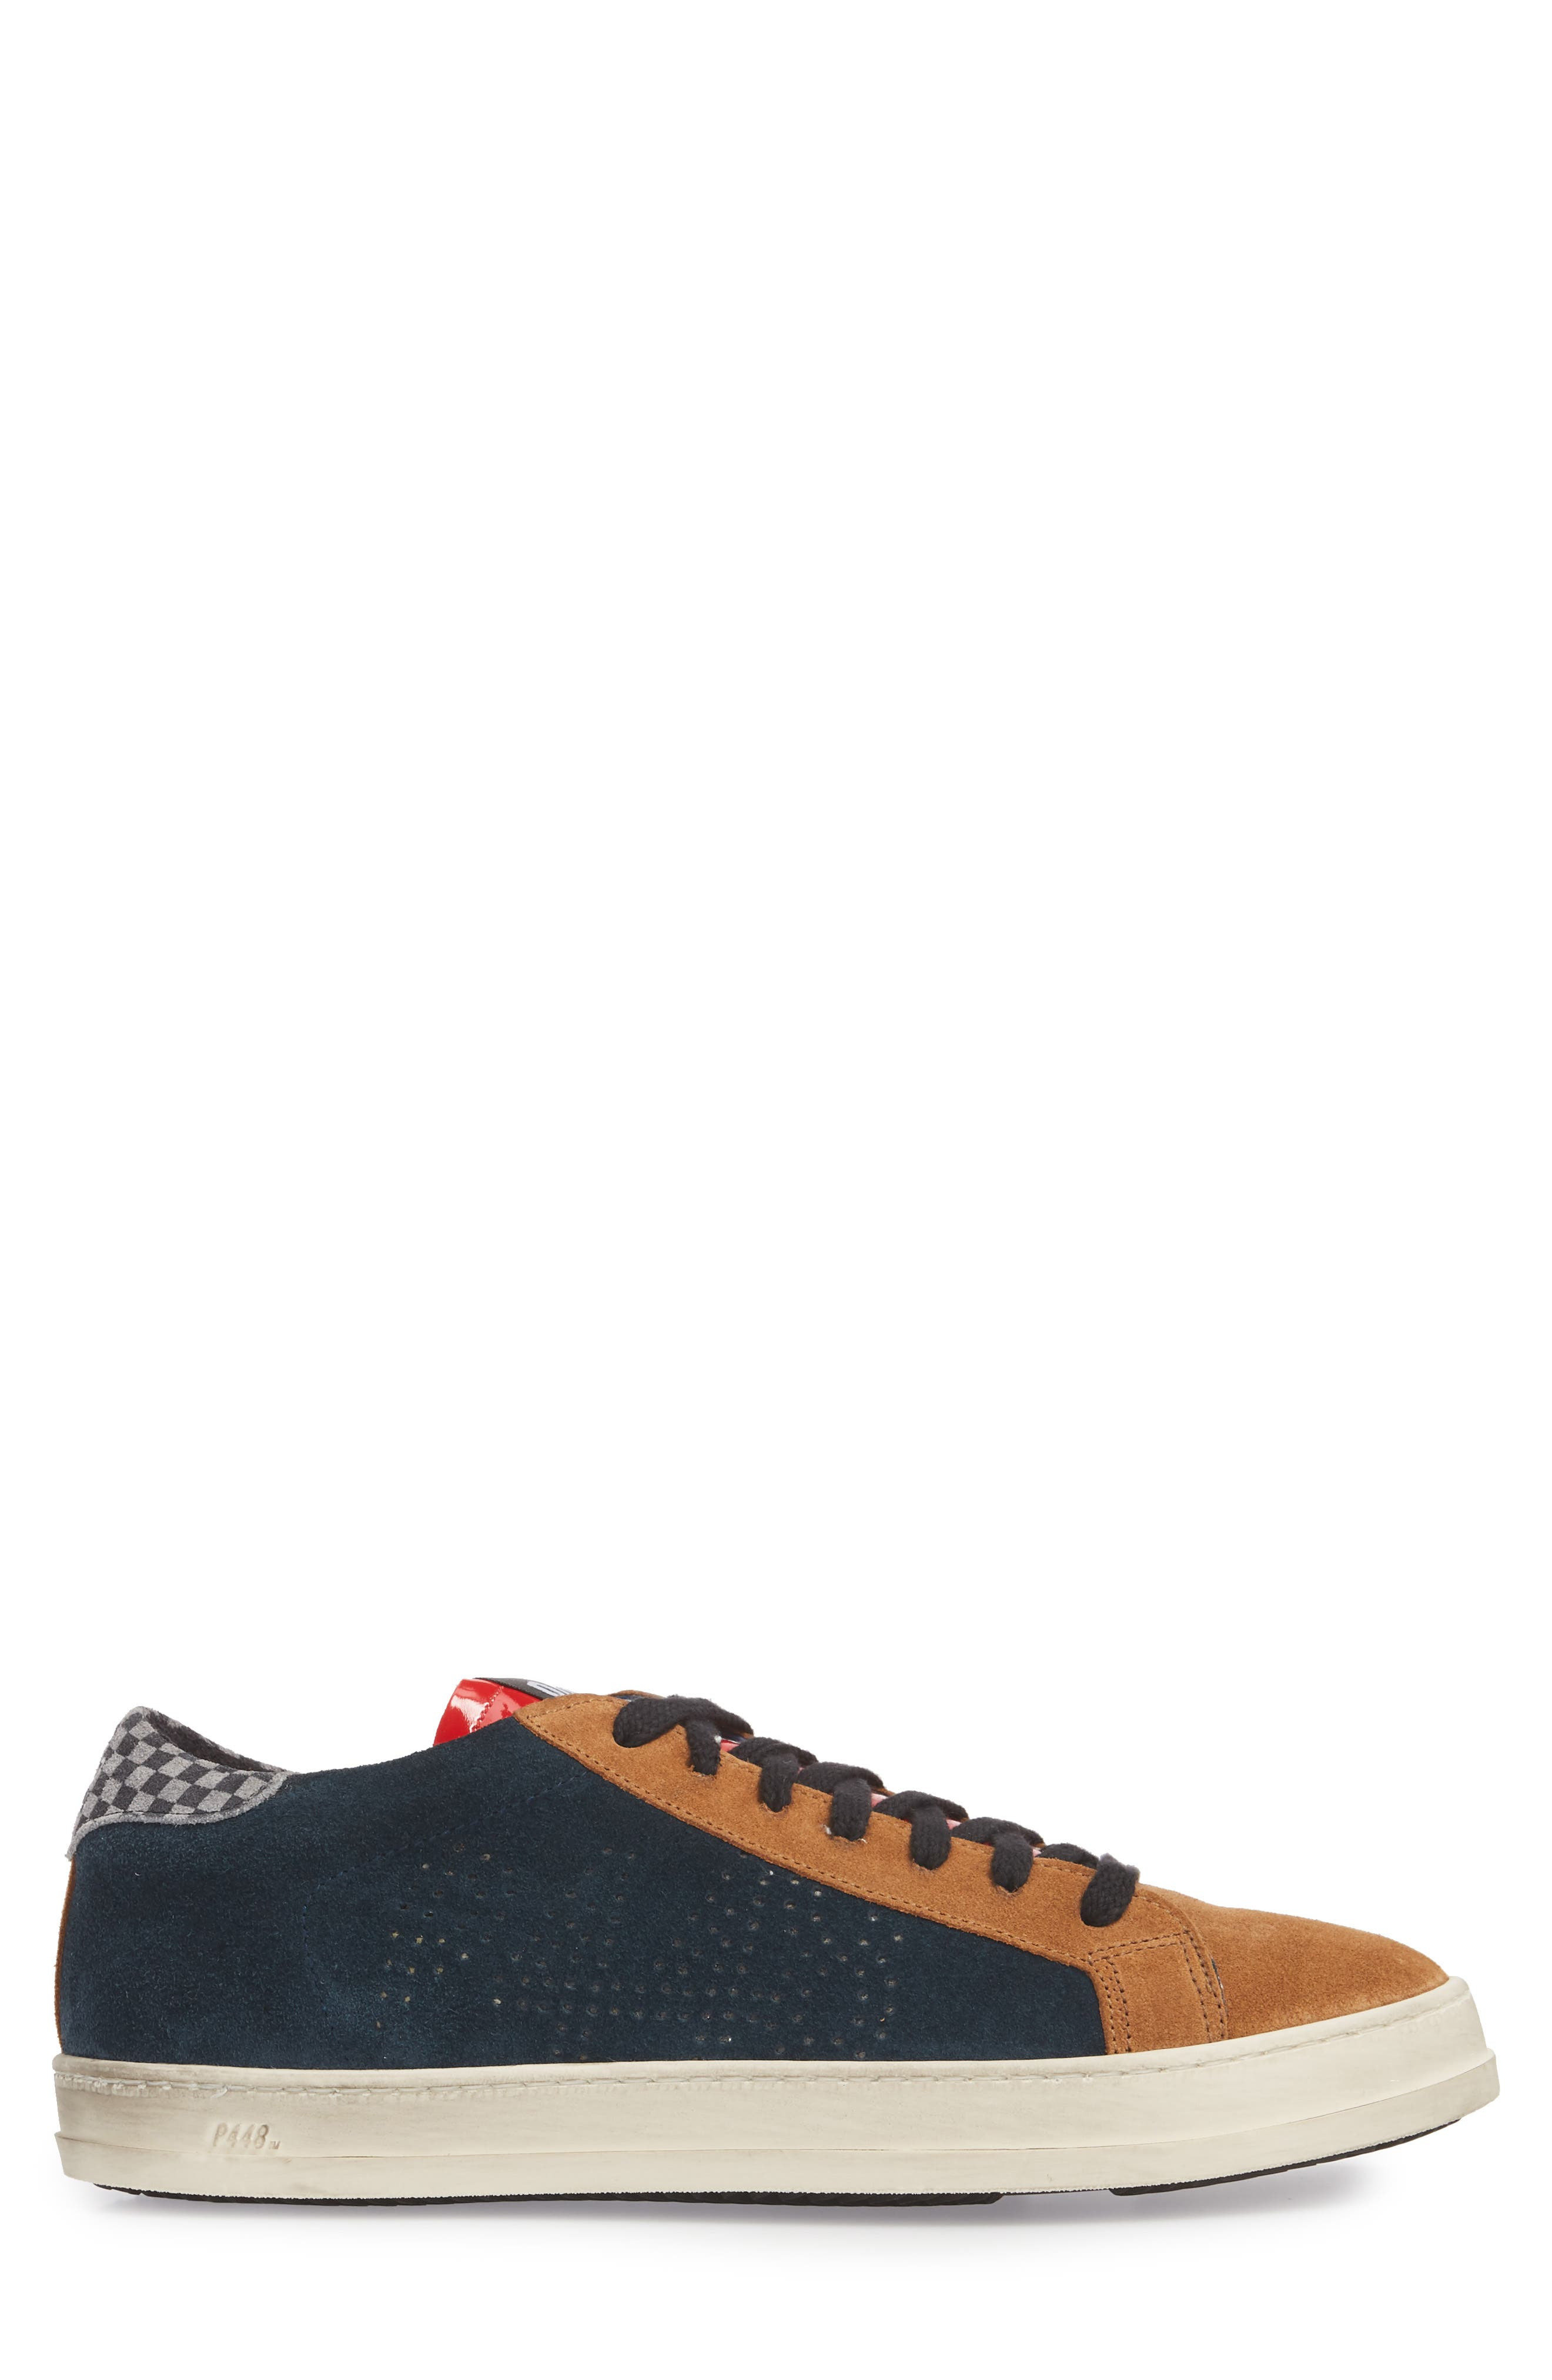 John Mix Low Top Sneaker,                             Alternate thumbnail 3, color,                             FOREST BLUE